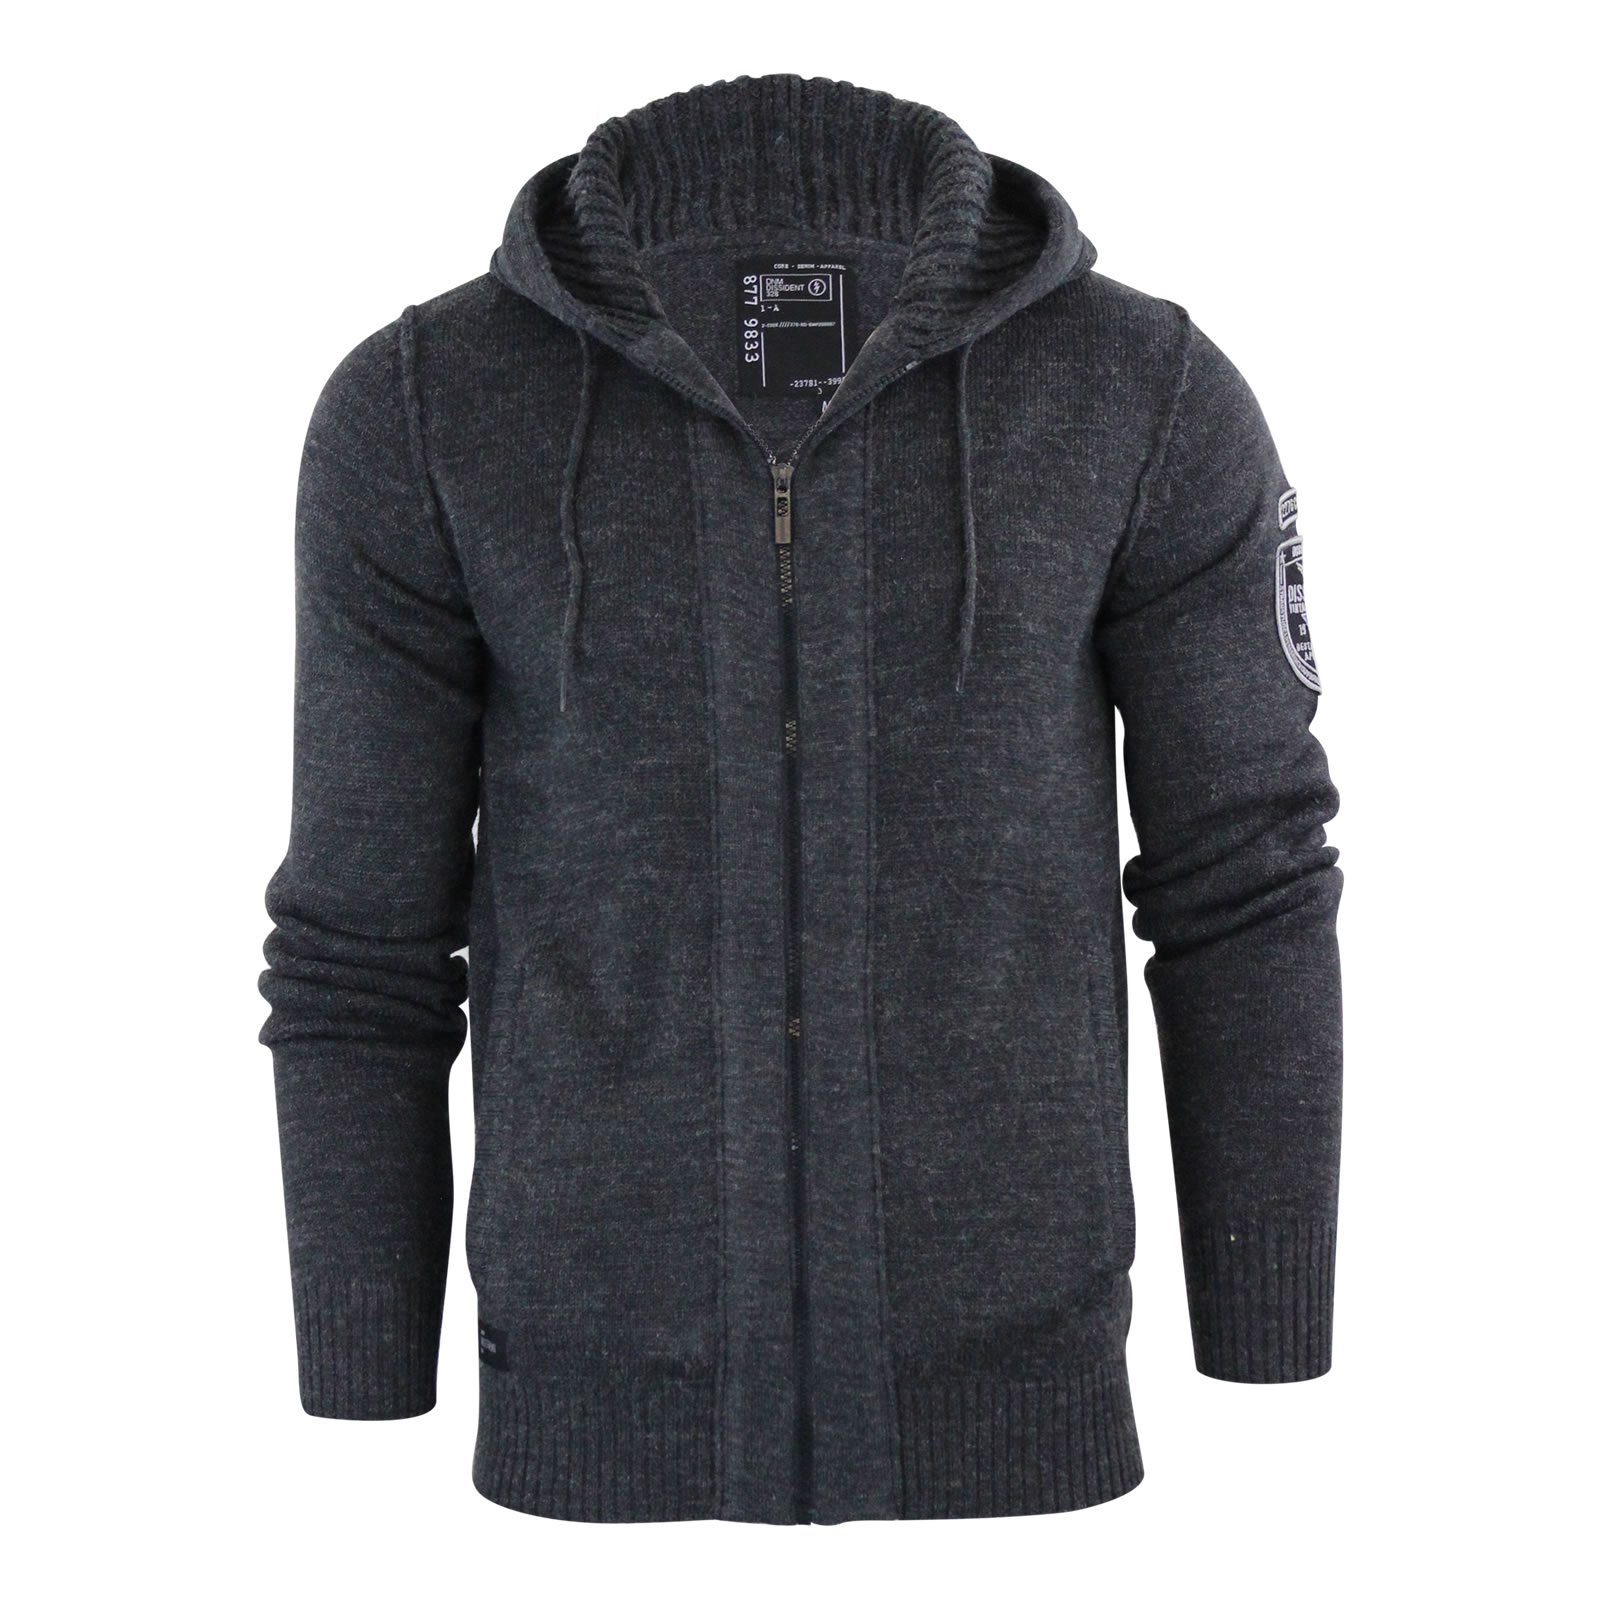 Shop for men's sweaters including polo sweaters, button up & turtlenecks. See the latest styles, colors & types of men's sweaters from Men's Wearhouse.